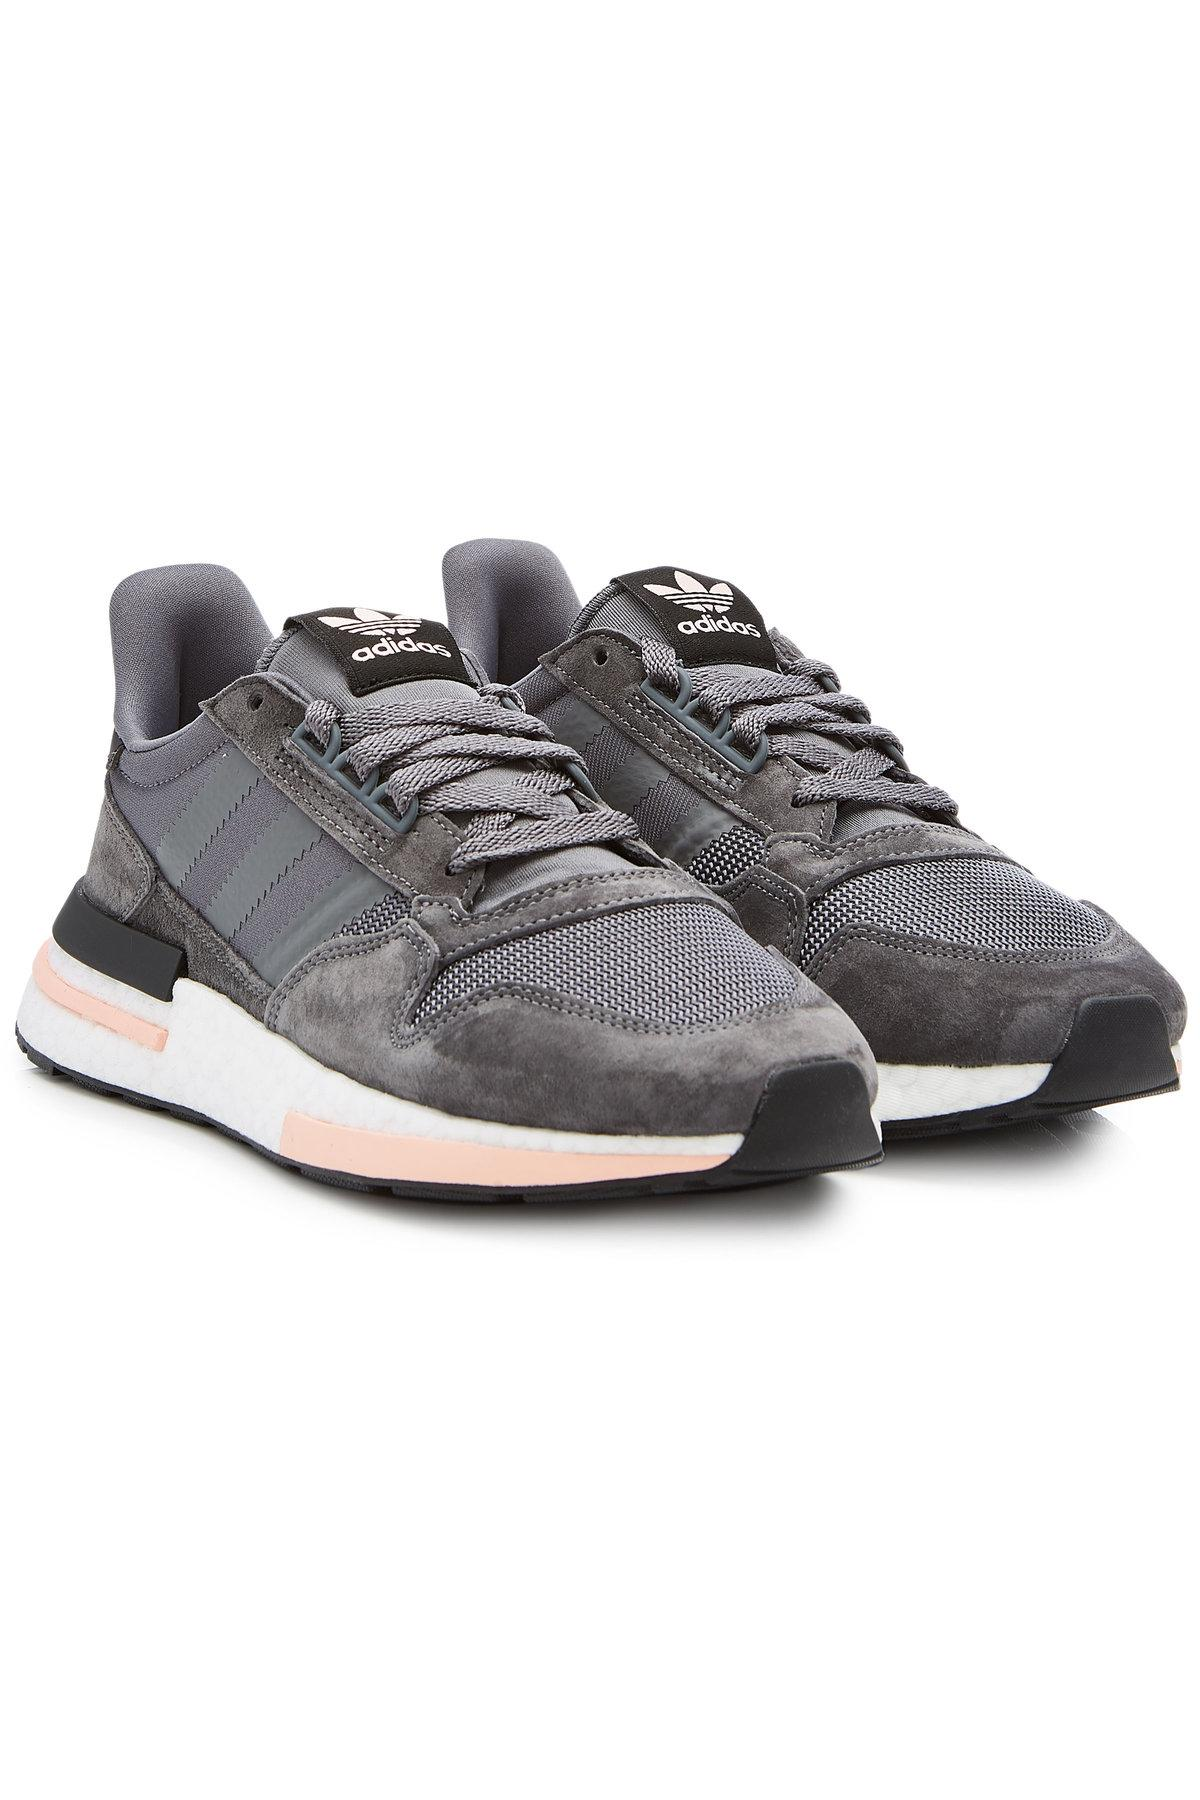 9549acfa7 Adidas Originals Zx 500 Rm Sneakers With Suede In Grey